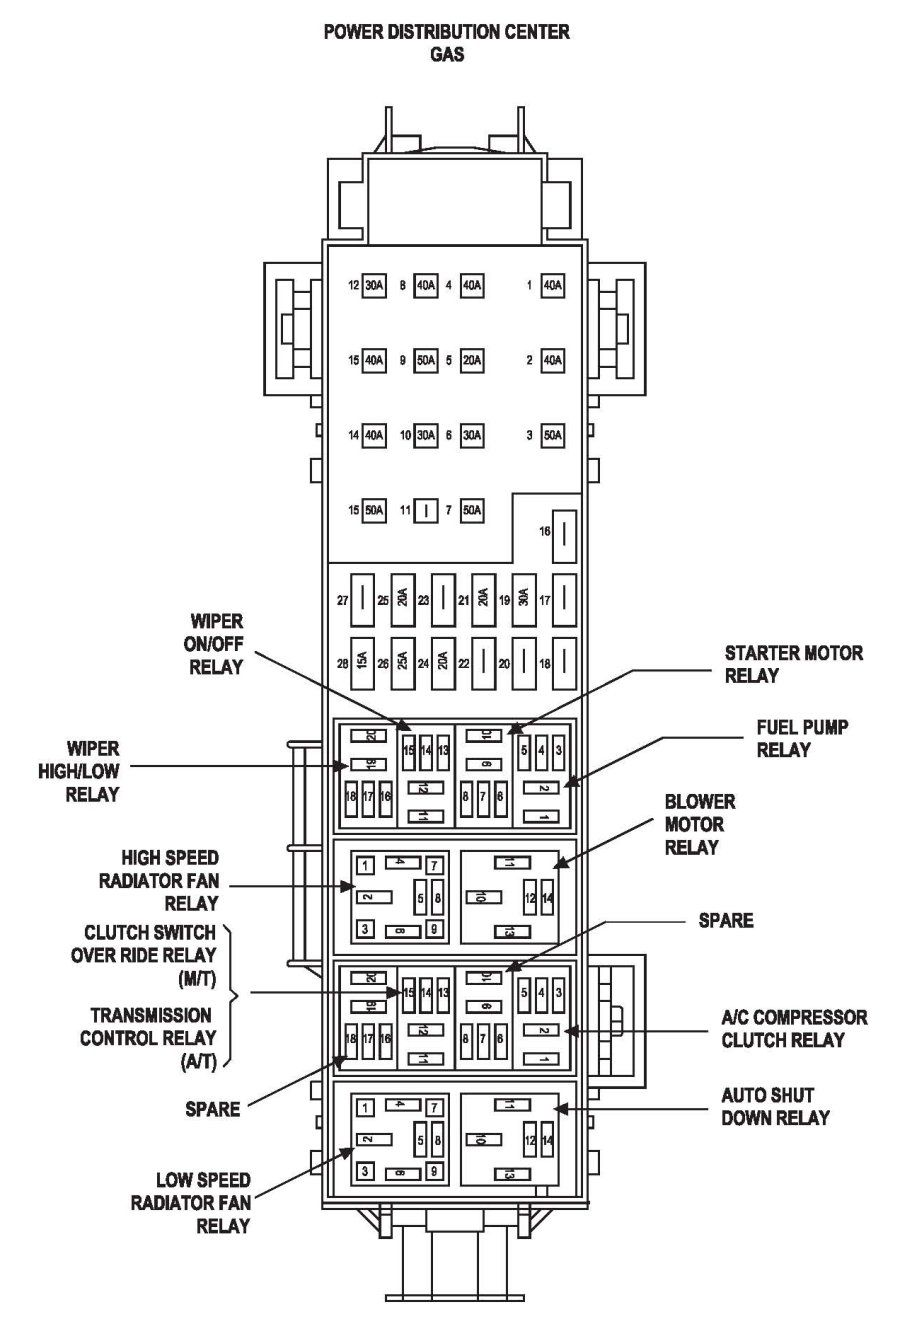 b3536c3739783eb19f827744cc42c3c4 jeep liberty fuse box diagram image details jeep liberty 2002 jeep wrangler fuse box at bayanpartner.co